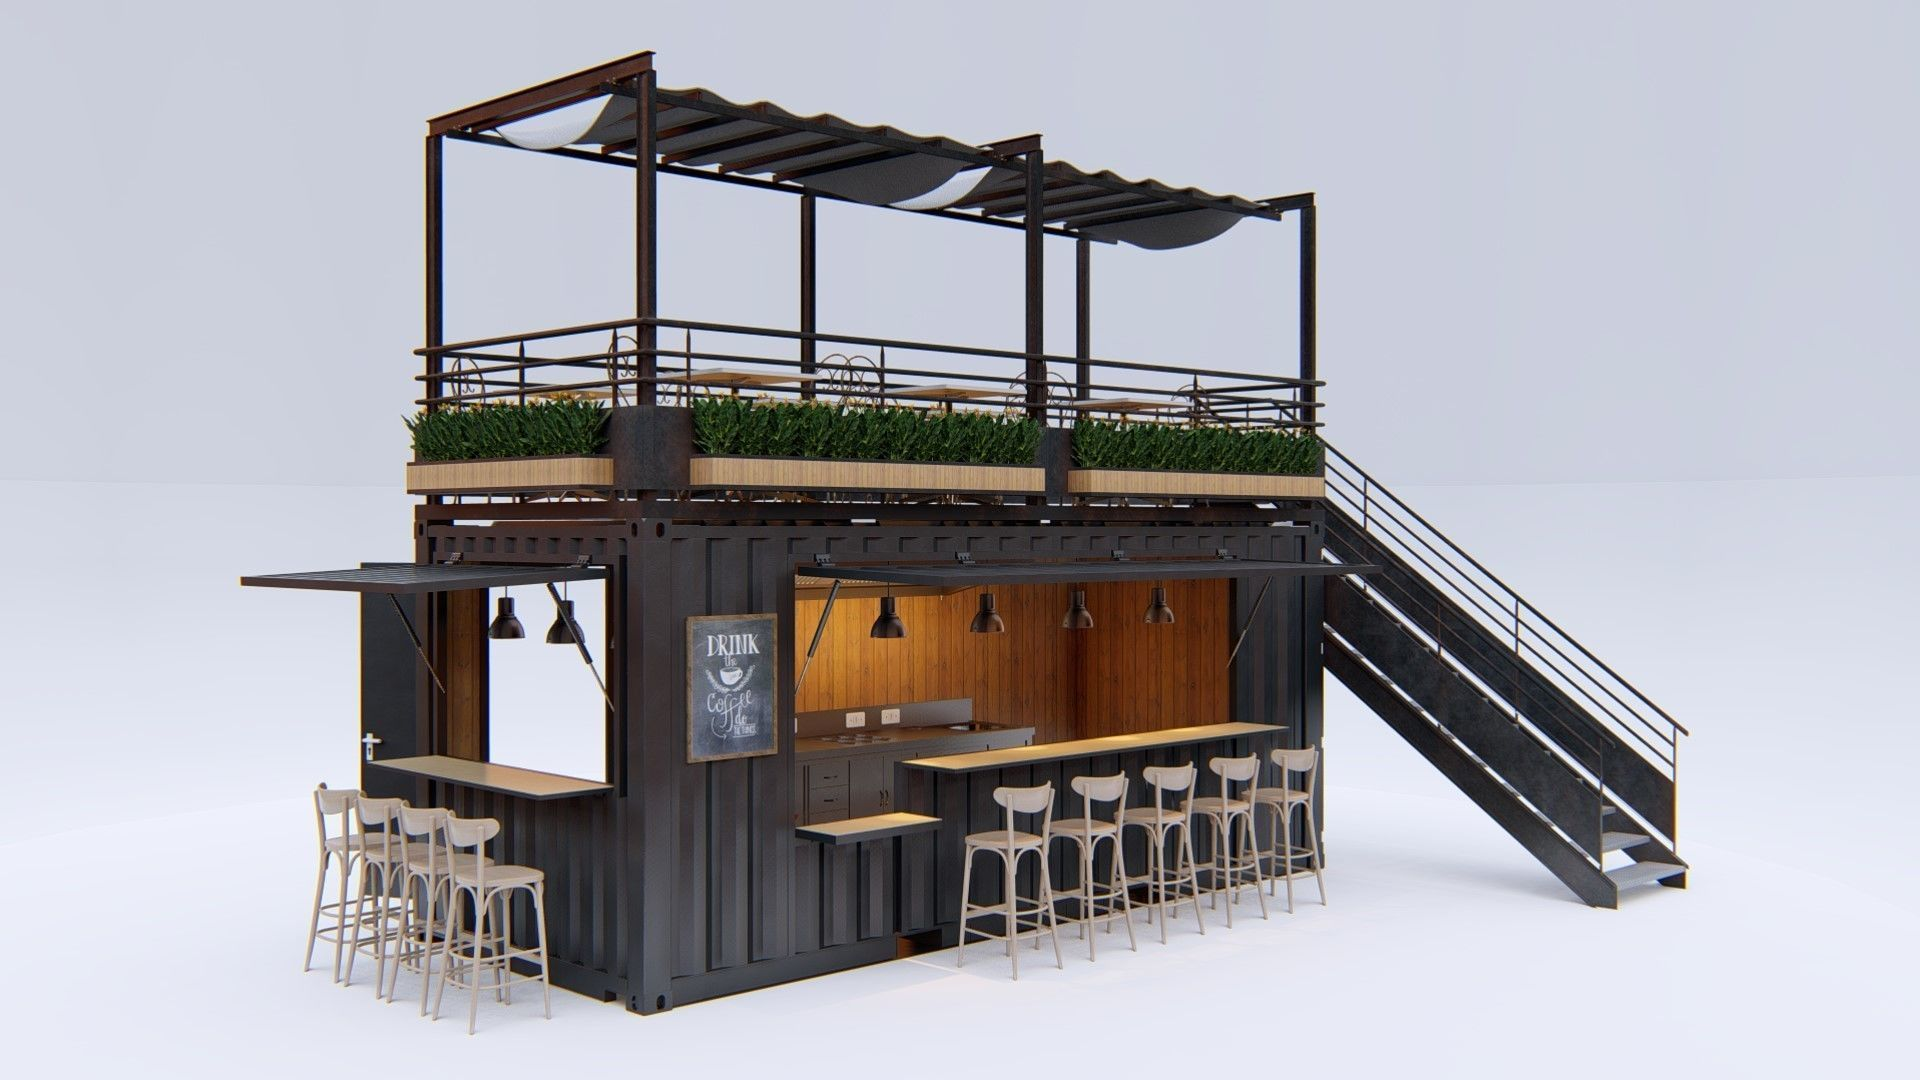 thiết kế container cafe